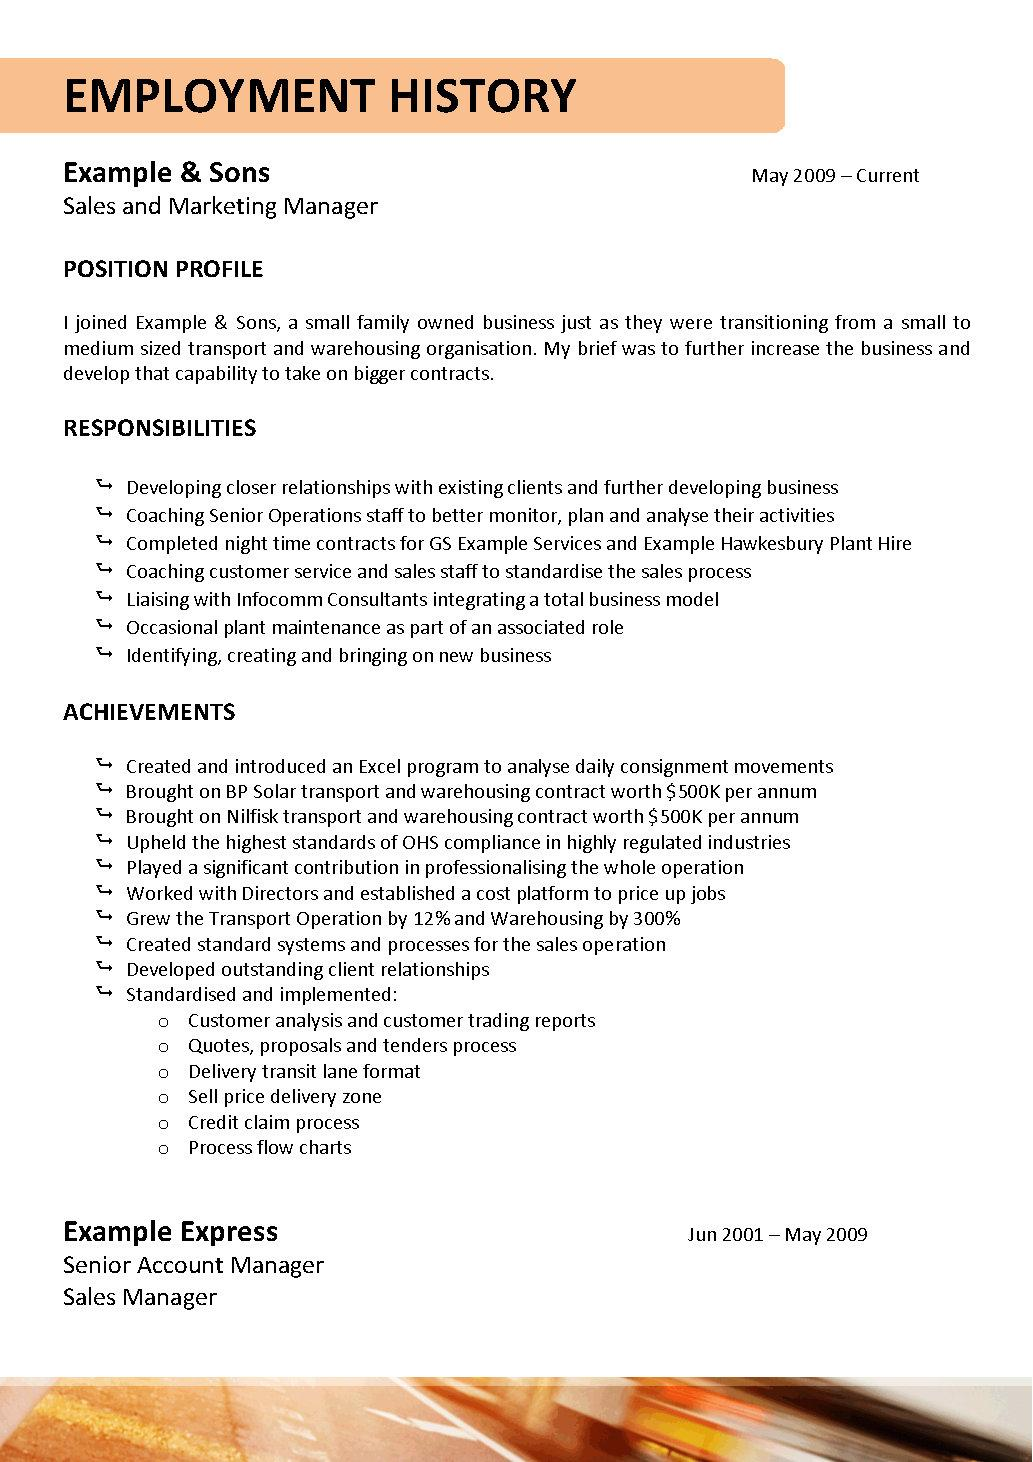 Resume Truck Driver Description For Resume sample resume truck driver progress sheet template for painter 82296465 driverhtml